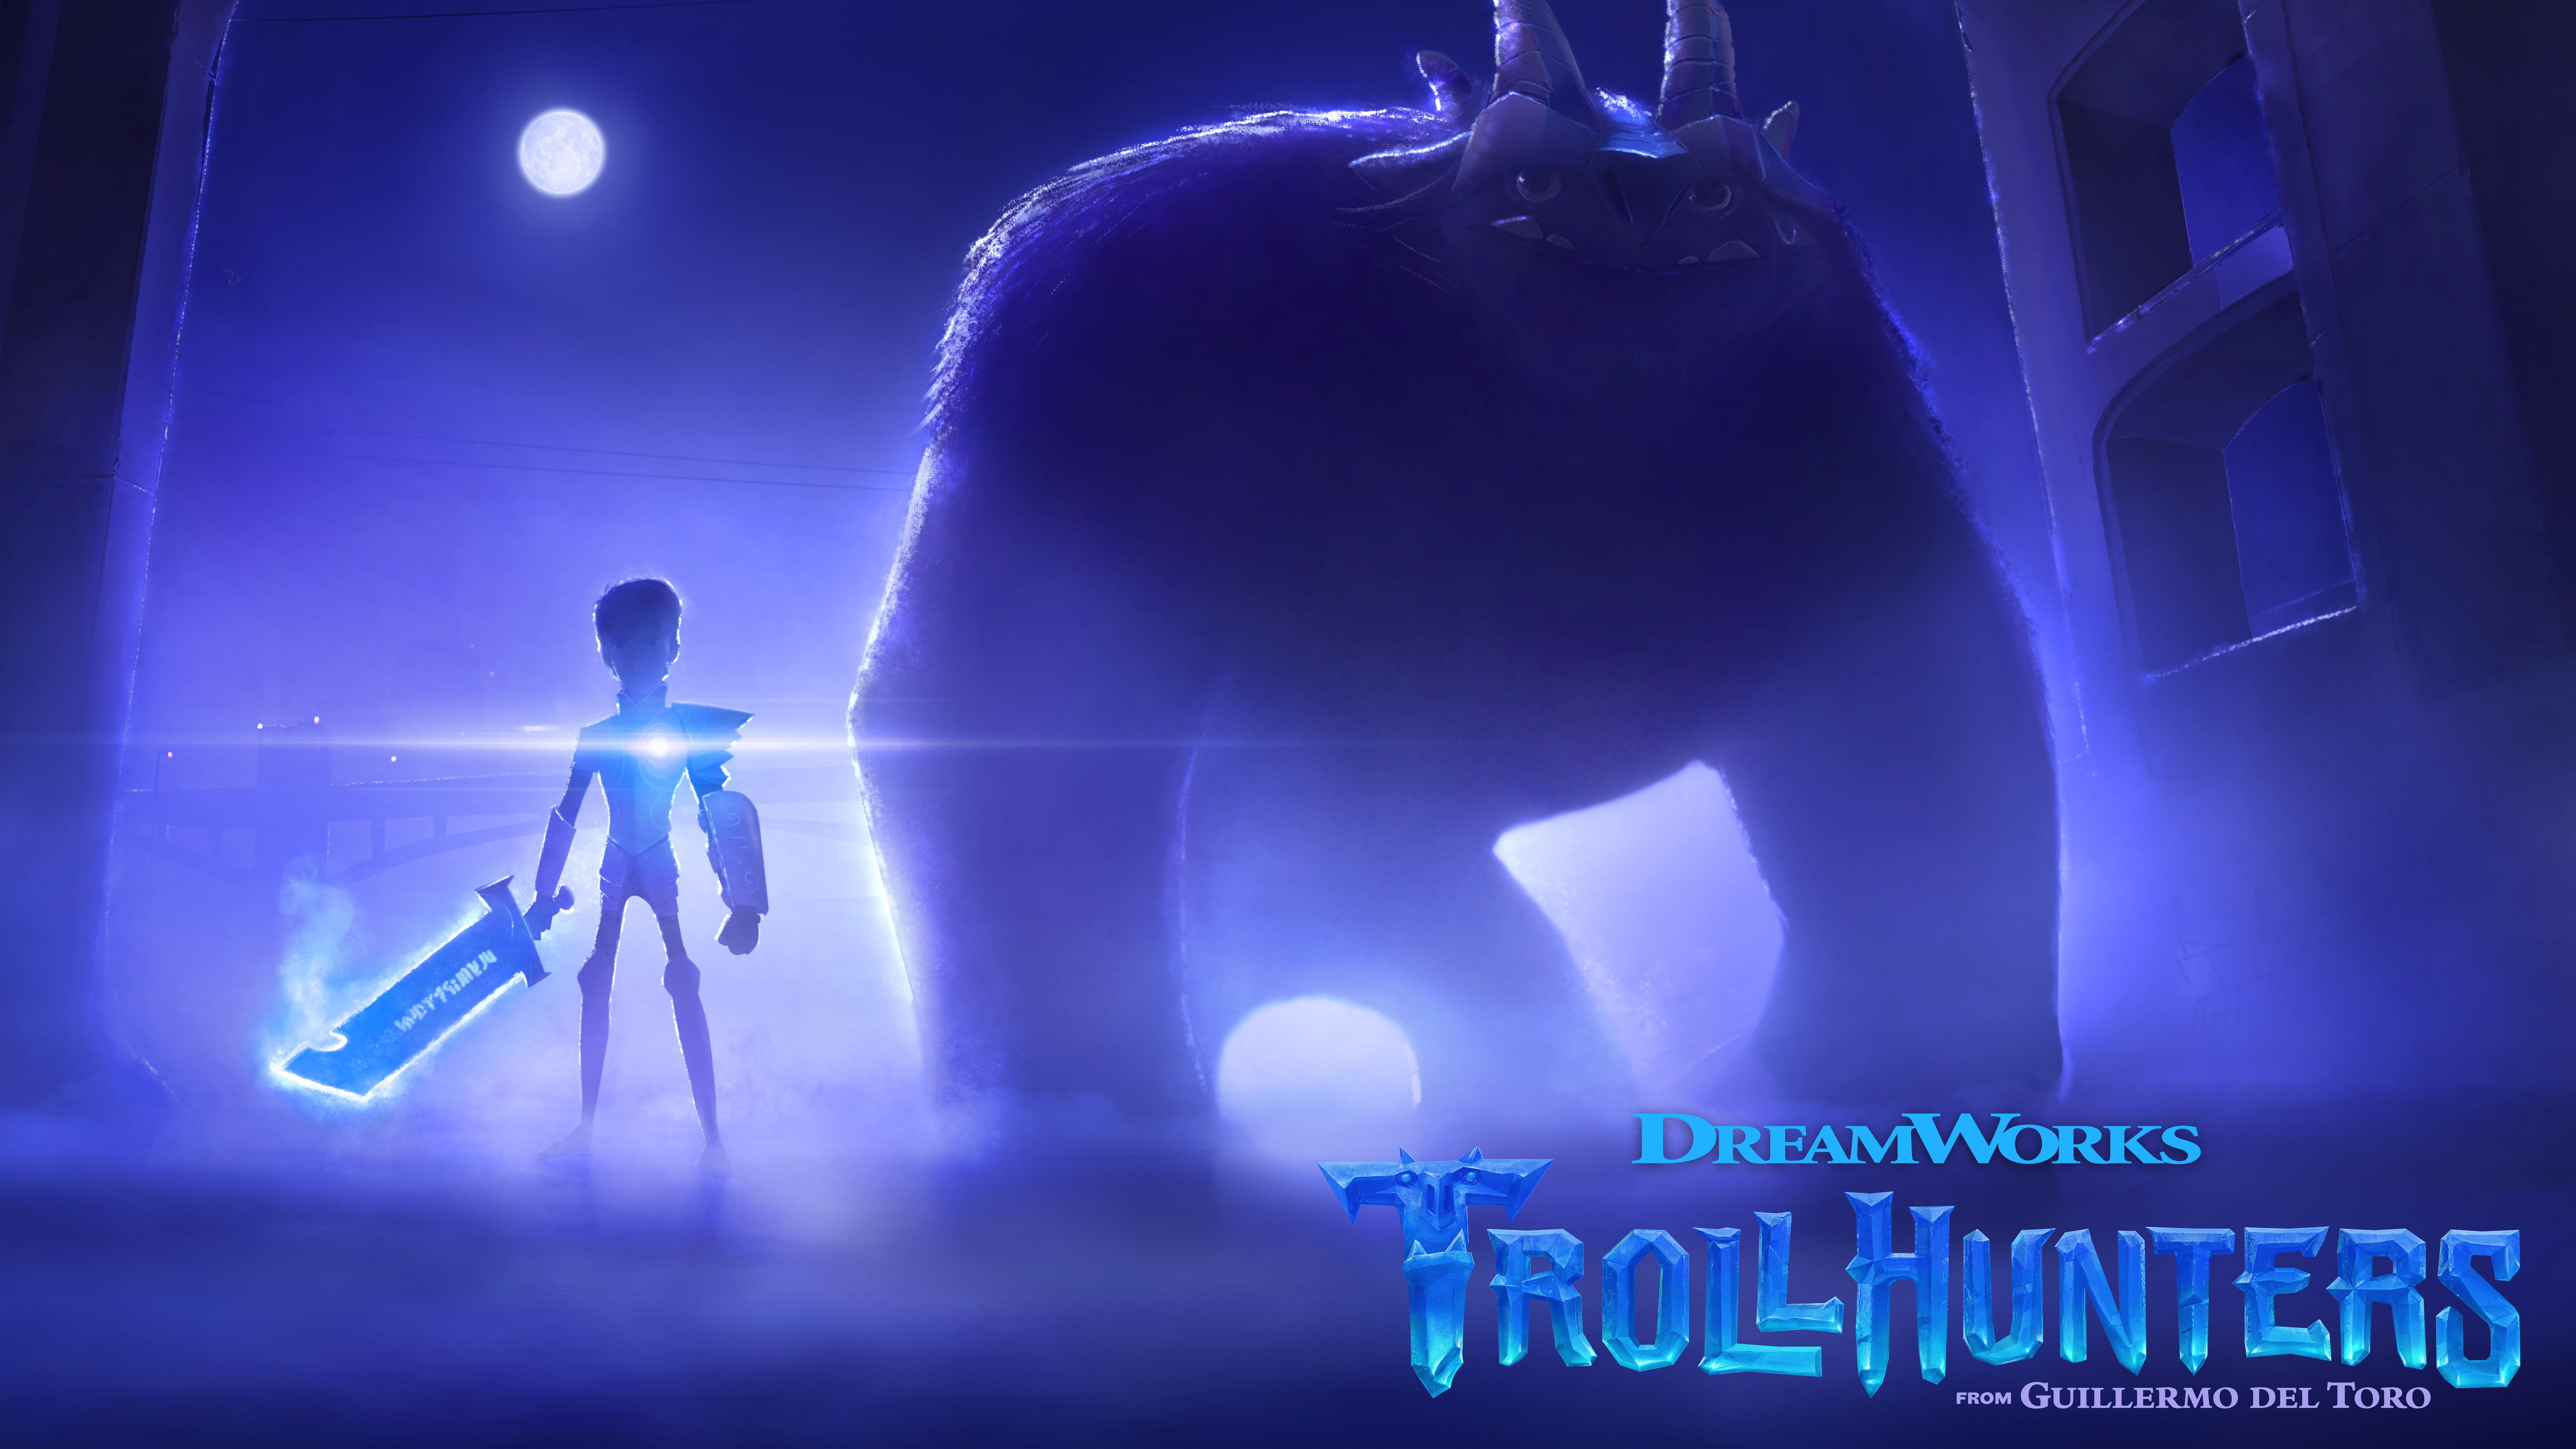 133171 8K Trollhunters Animation Movies wallpapers and 7680x4320